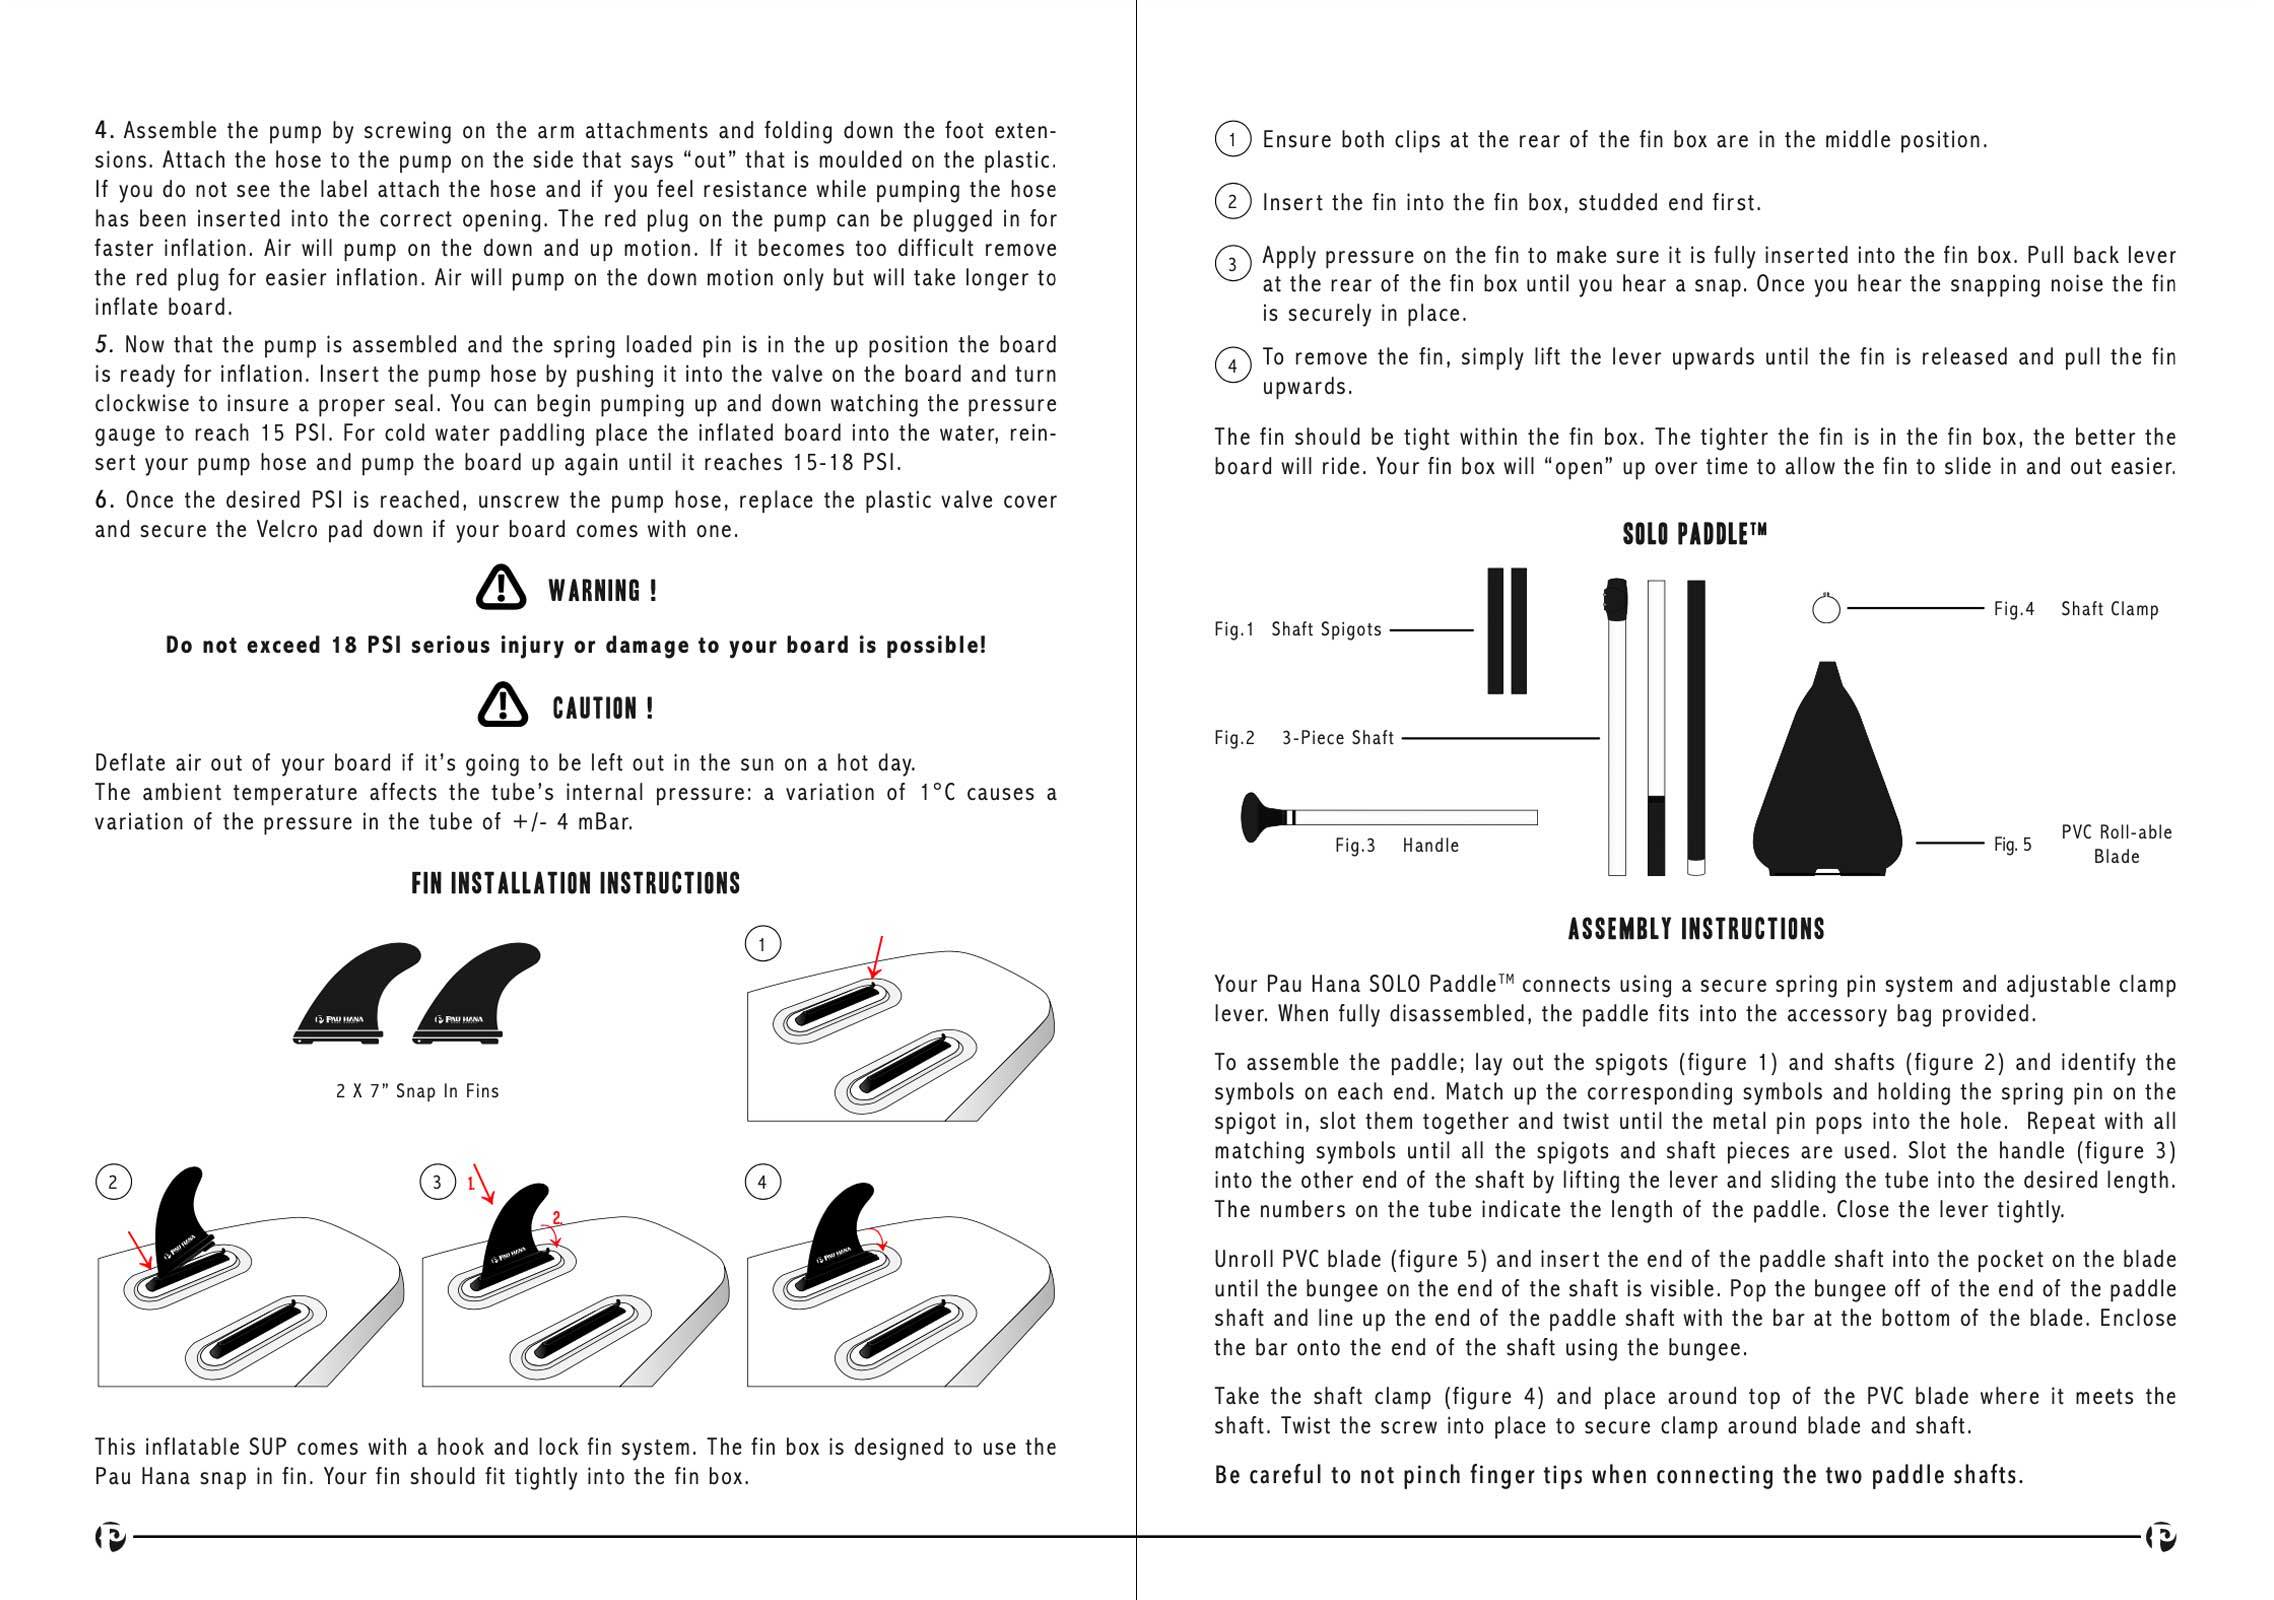 pau hana Solo SUP Backcountry inflatable stand up paddle board user manual page 4-5